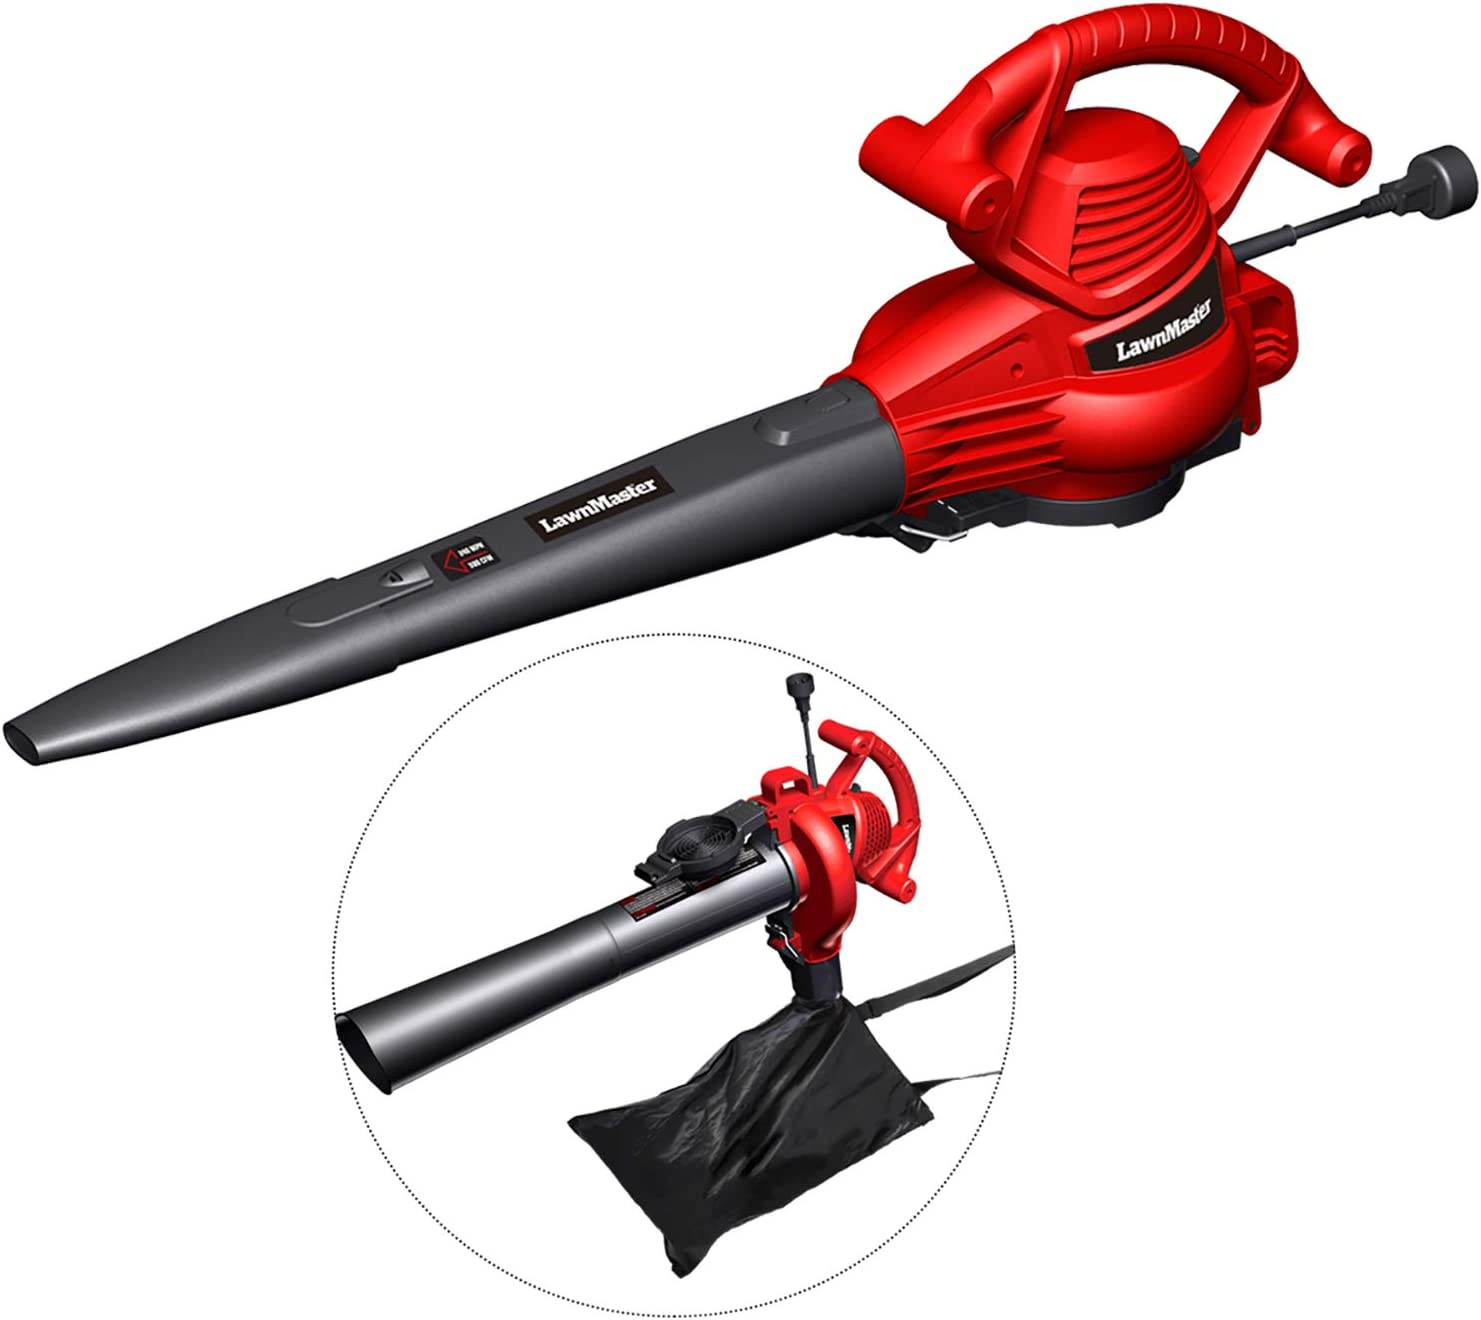 LawnMaster Red Edition BV1210 1201 Electric Blower Vacuum Mulcher